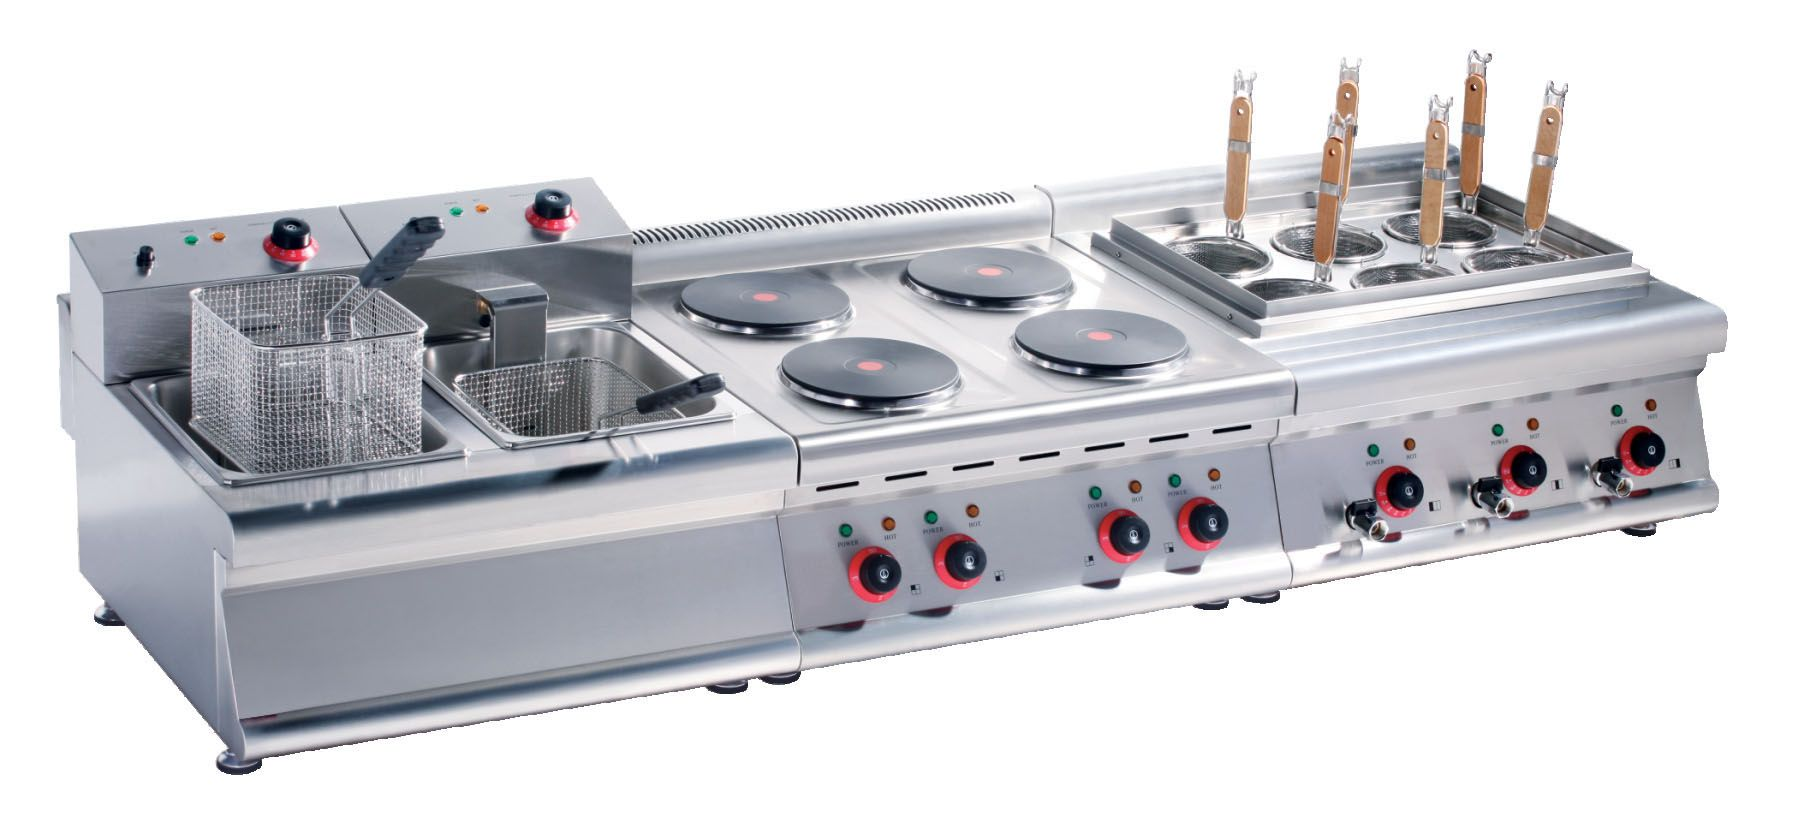 Fast Food Restaurant Kitchen Equipment fast-food-restaurant-kitchen-equipment-cooking-fryer-refrigeration